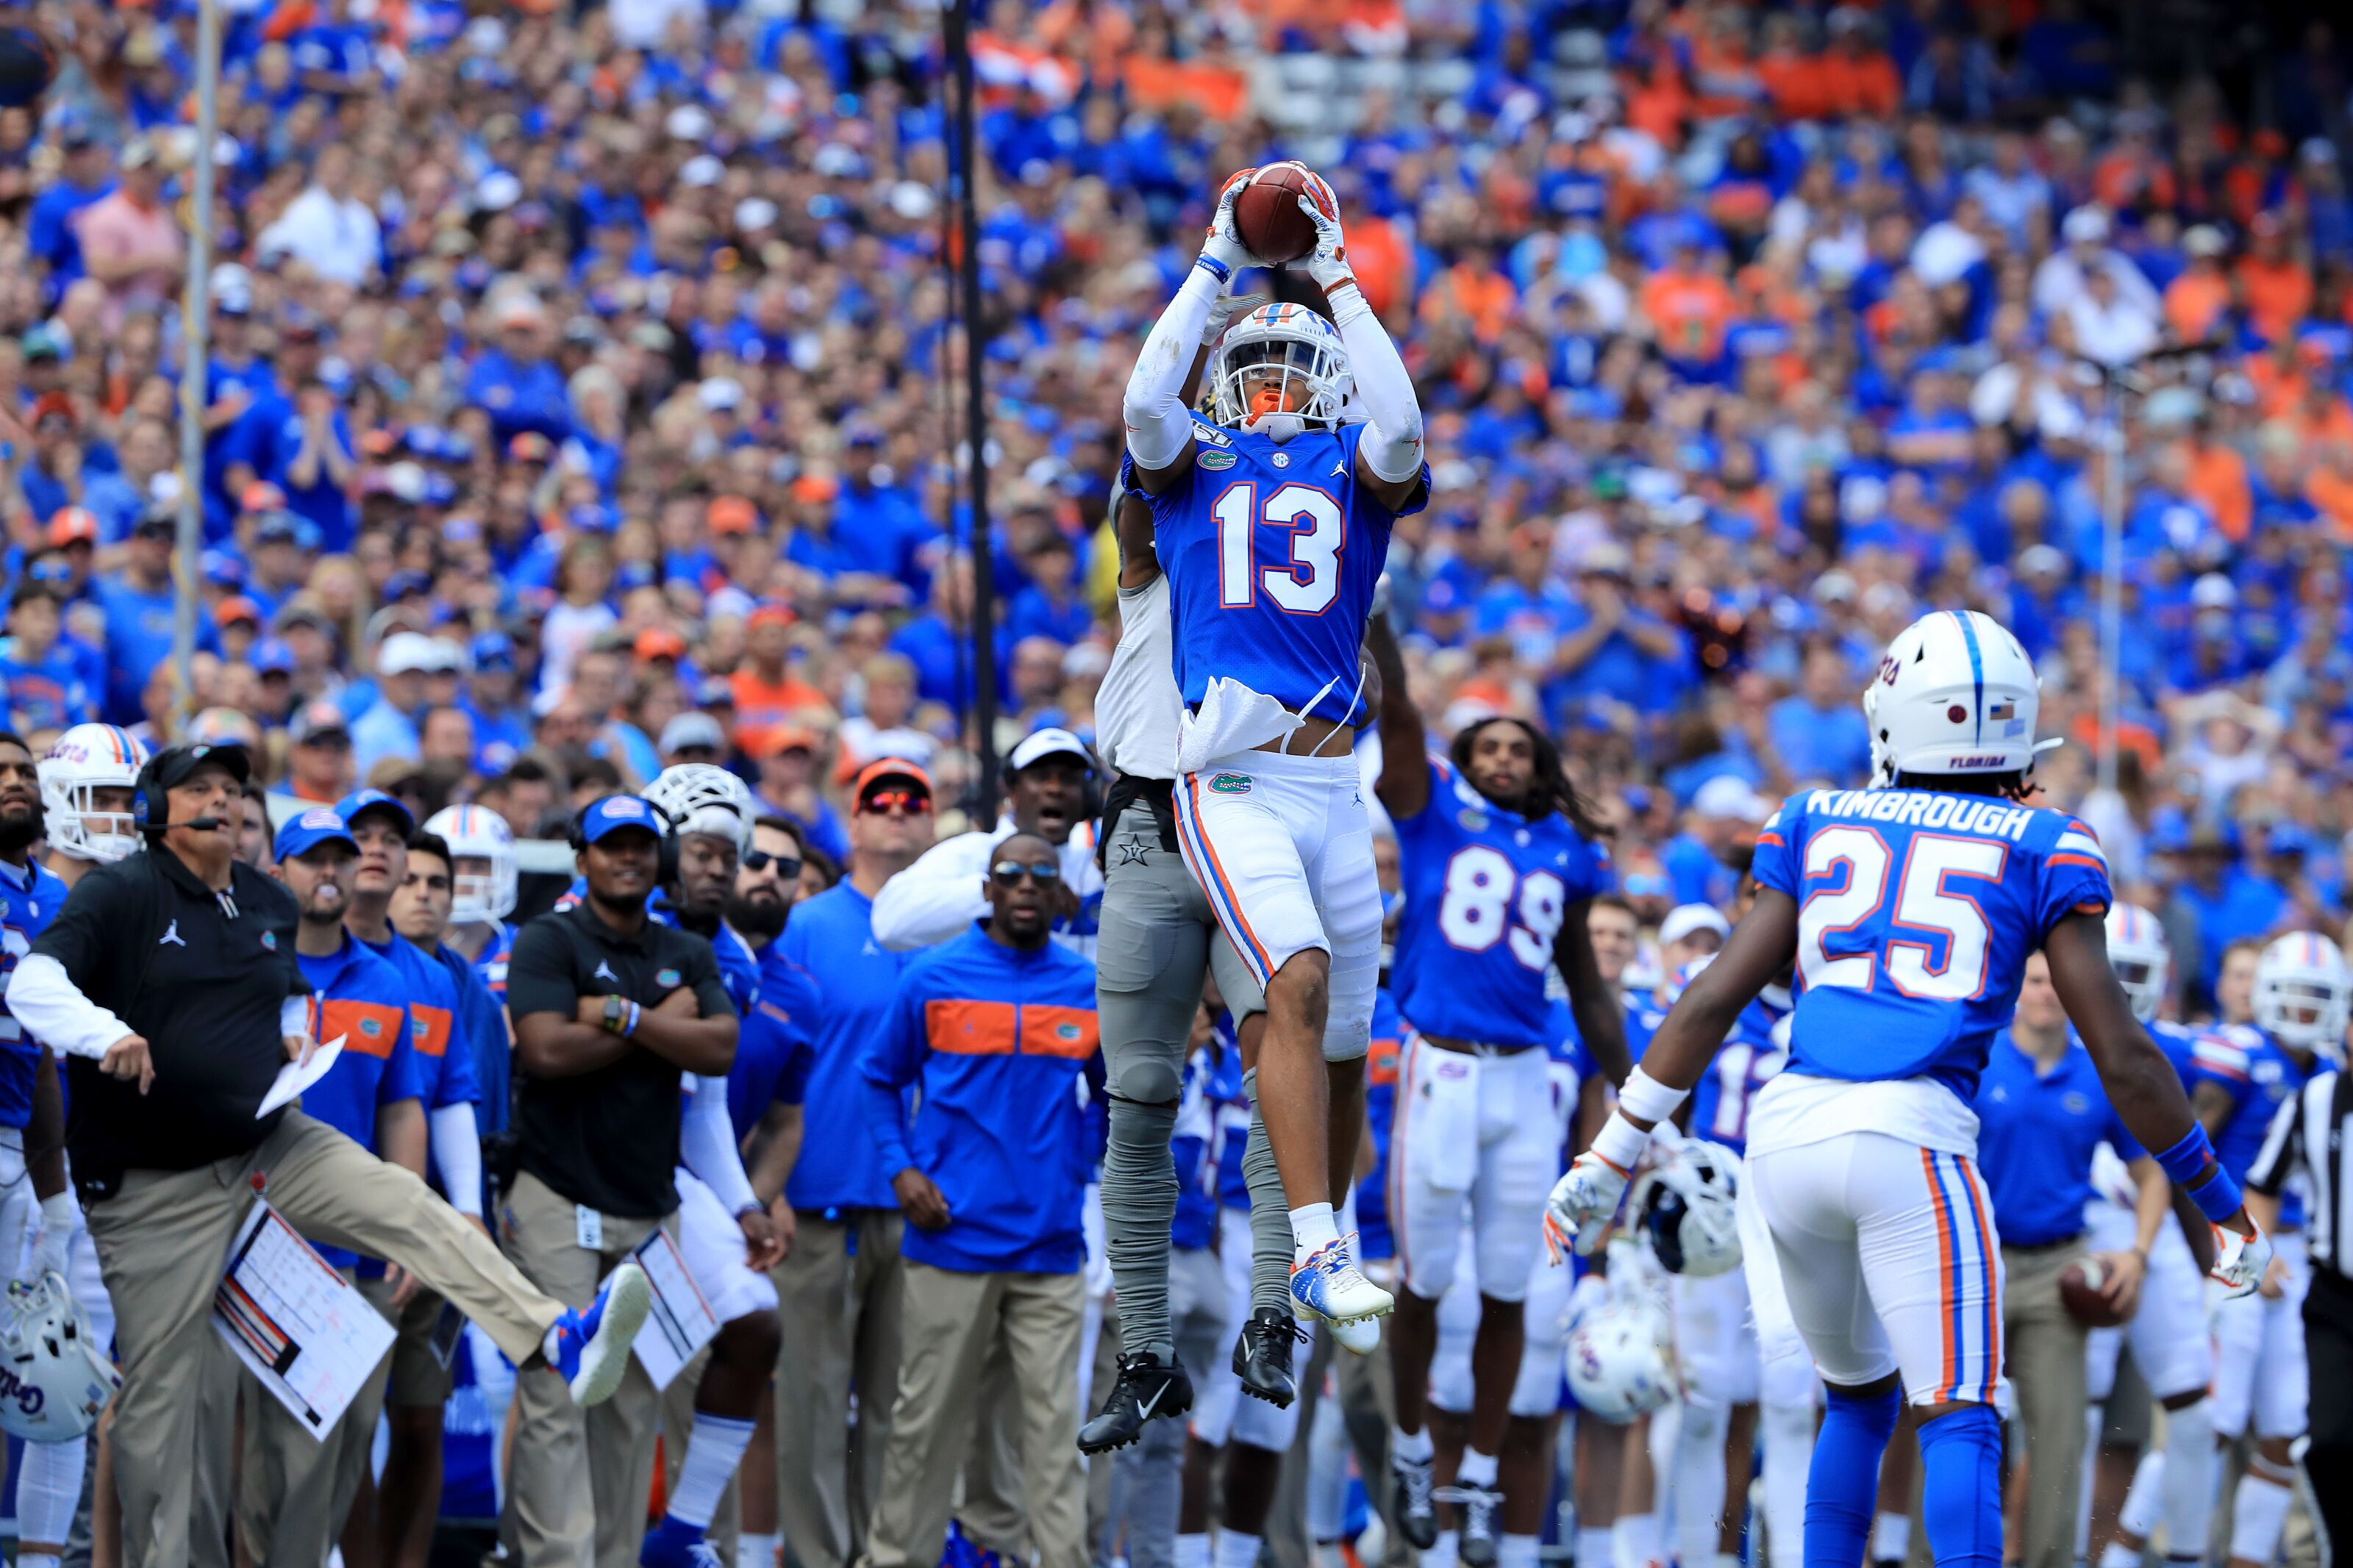 Florida football: 3 overreactions from Saturday's win over Vandy